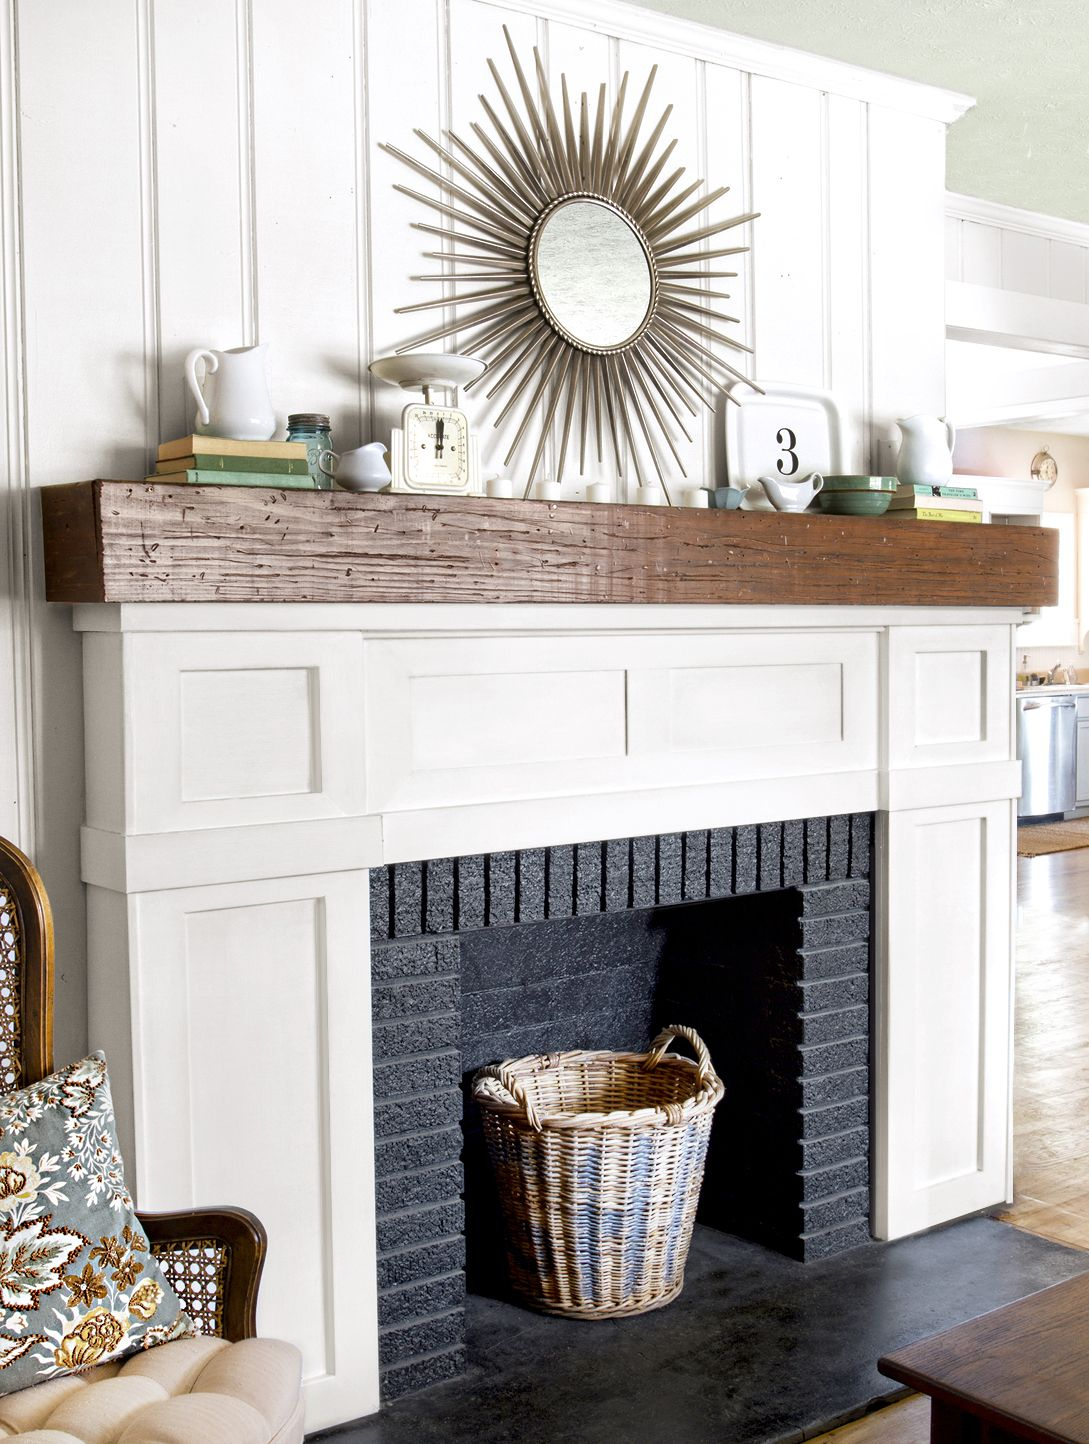 A Fireplace Face Lift For Just 87 This Old House In 2020 Fireplace Facing Painted Brick Fireplaces Fireplace Remodel